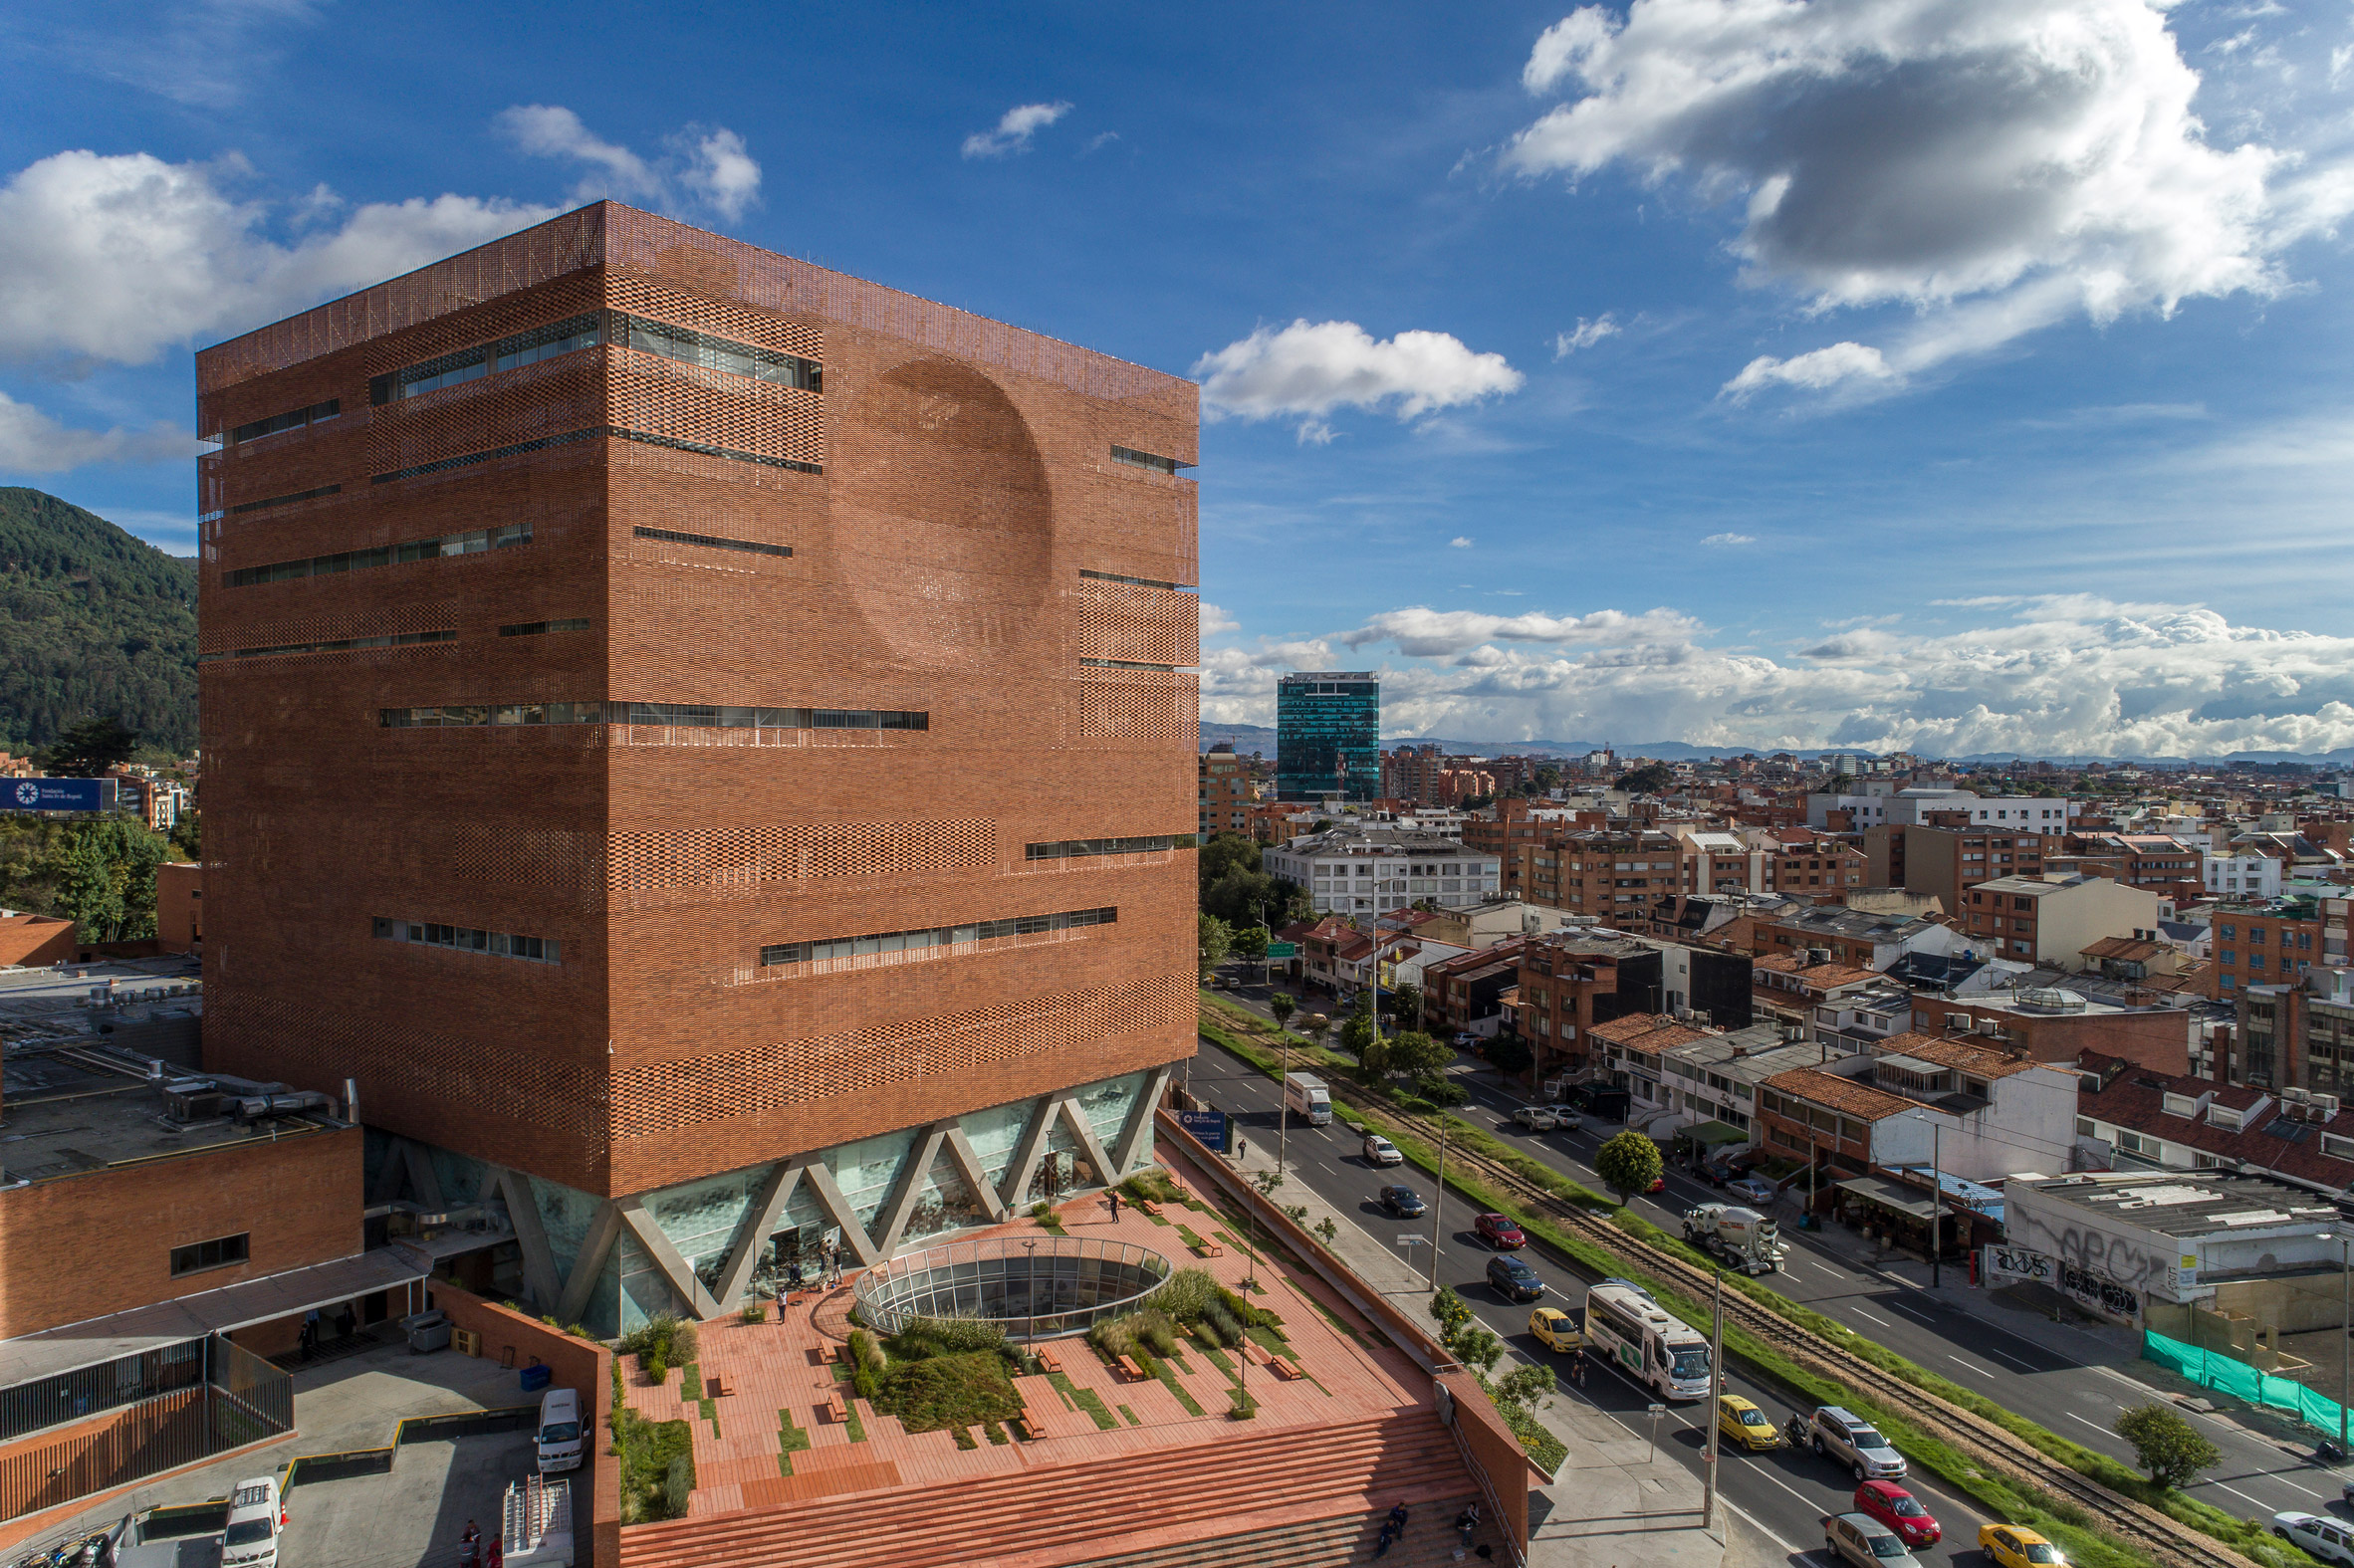 Expansion of the University Hospital, Colombia